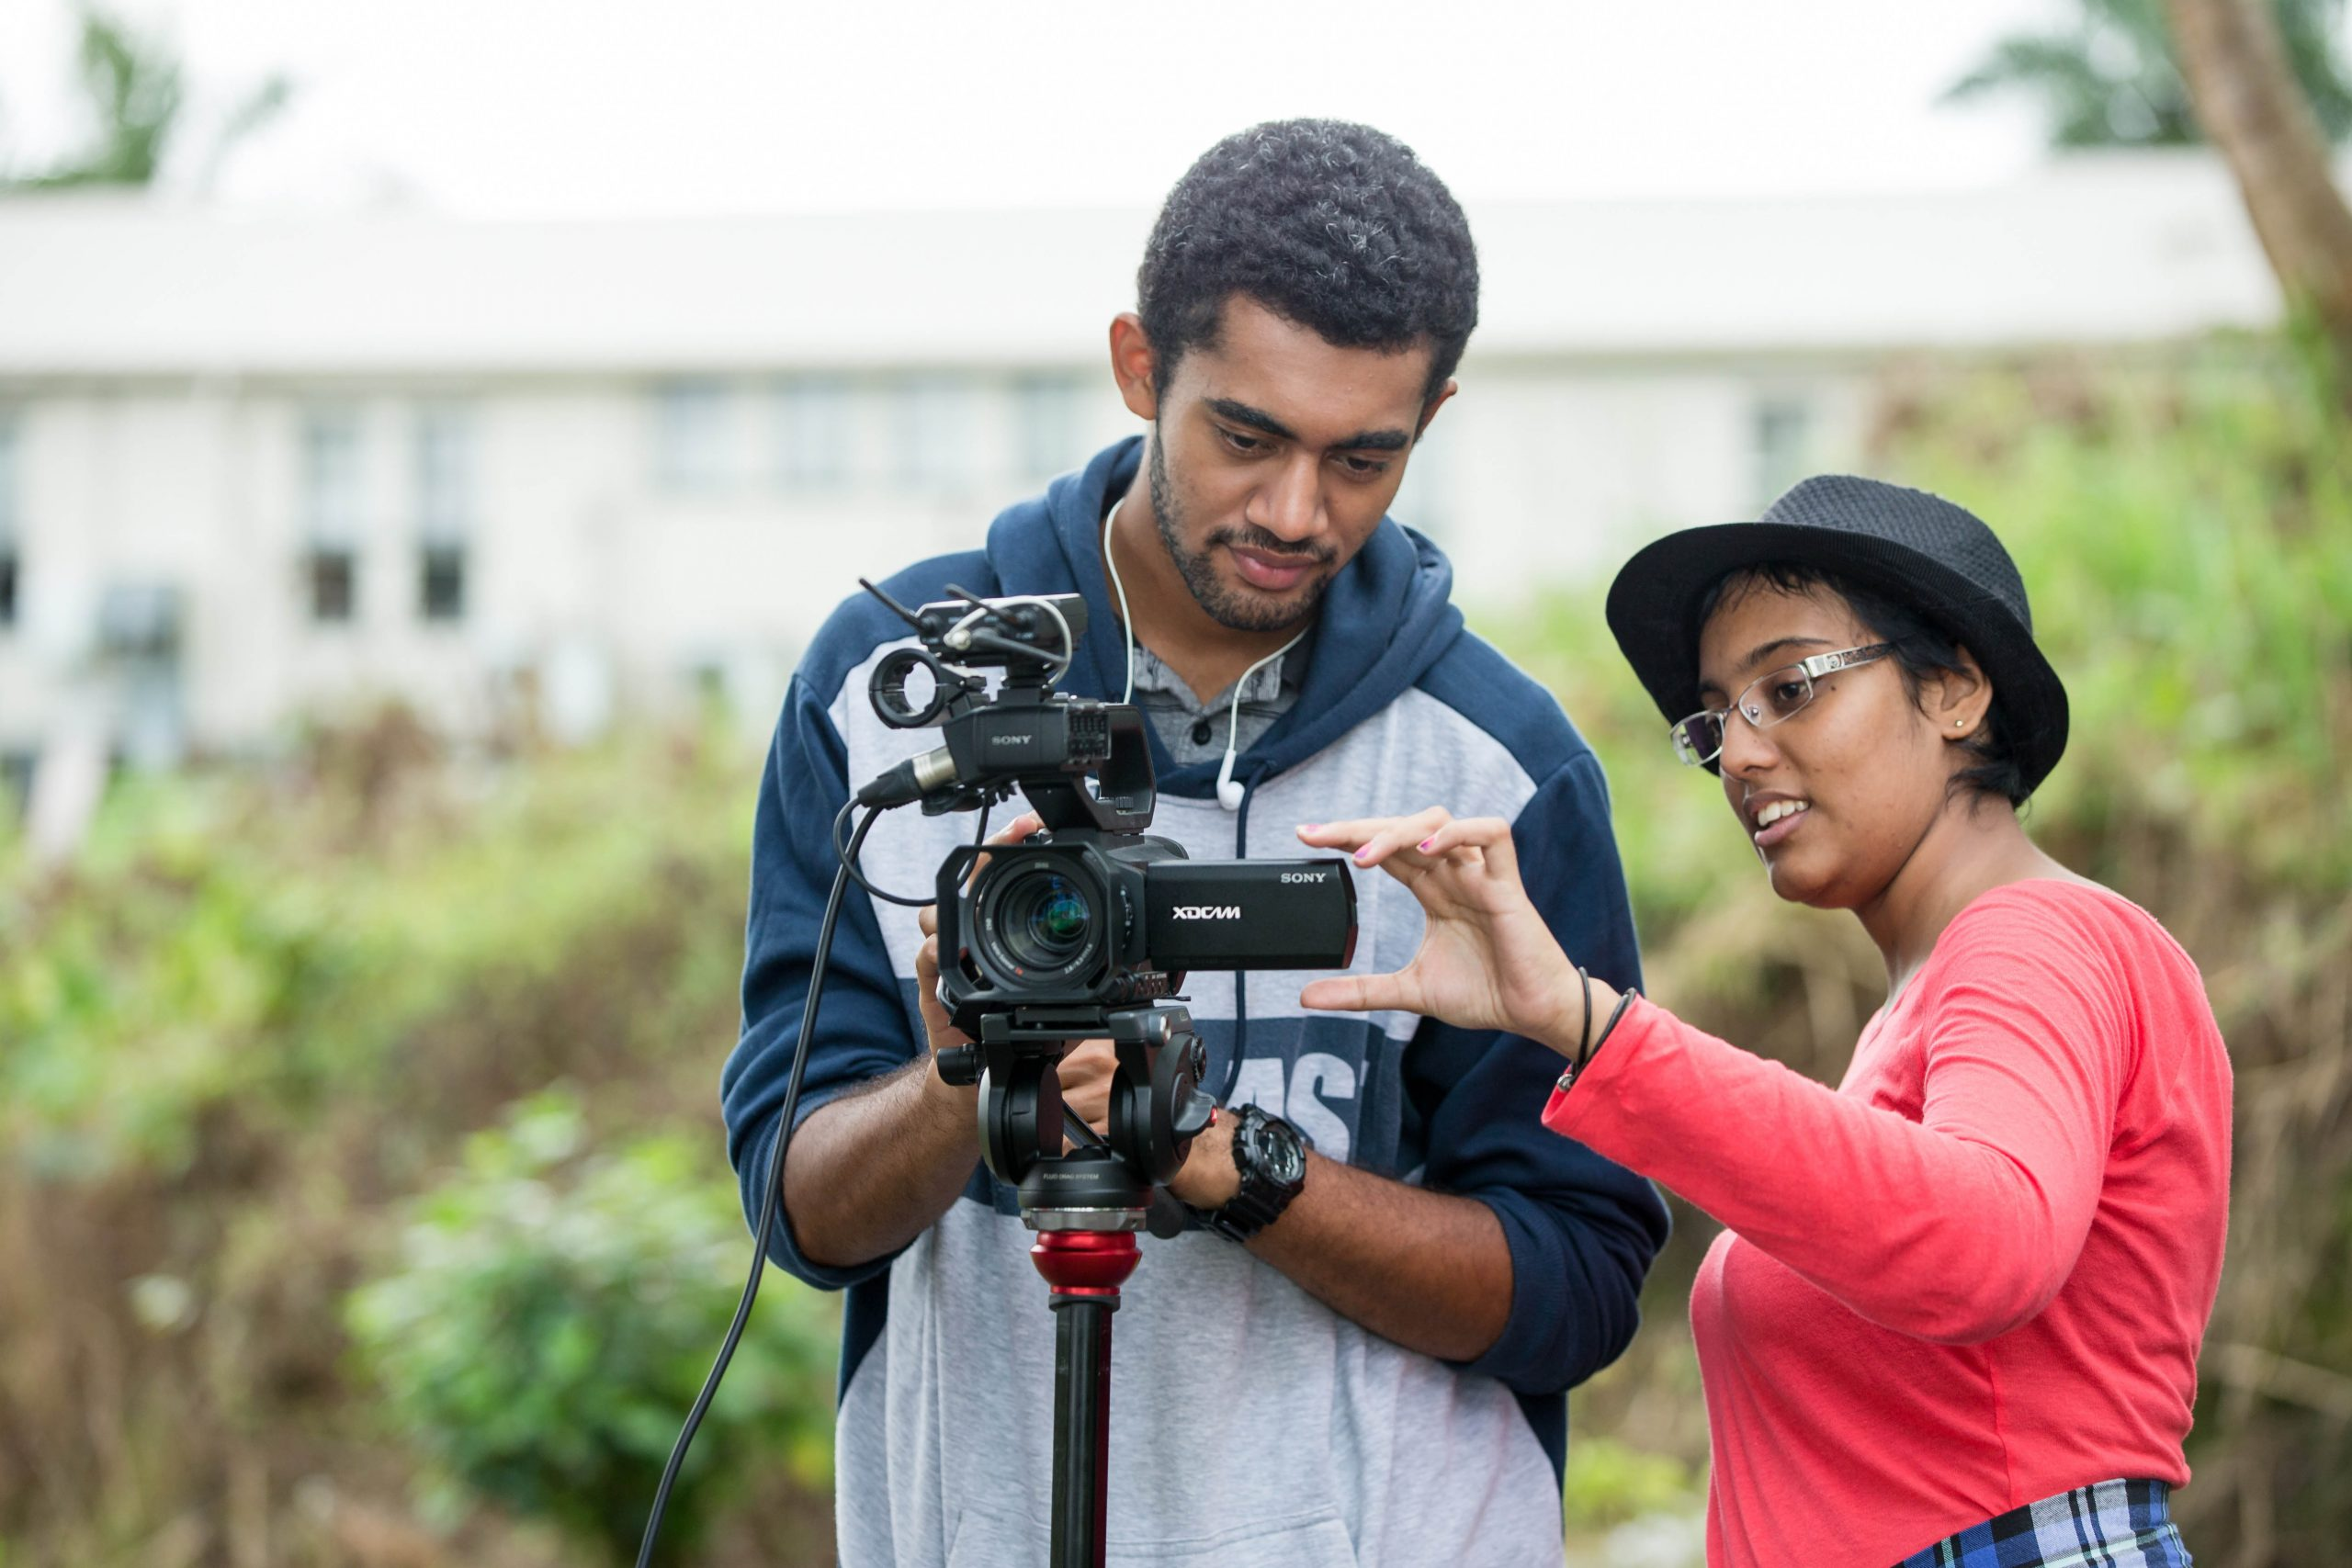 Sarah Robertson (right) tests the camera with a colleague during their practical session.